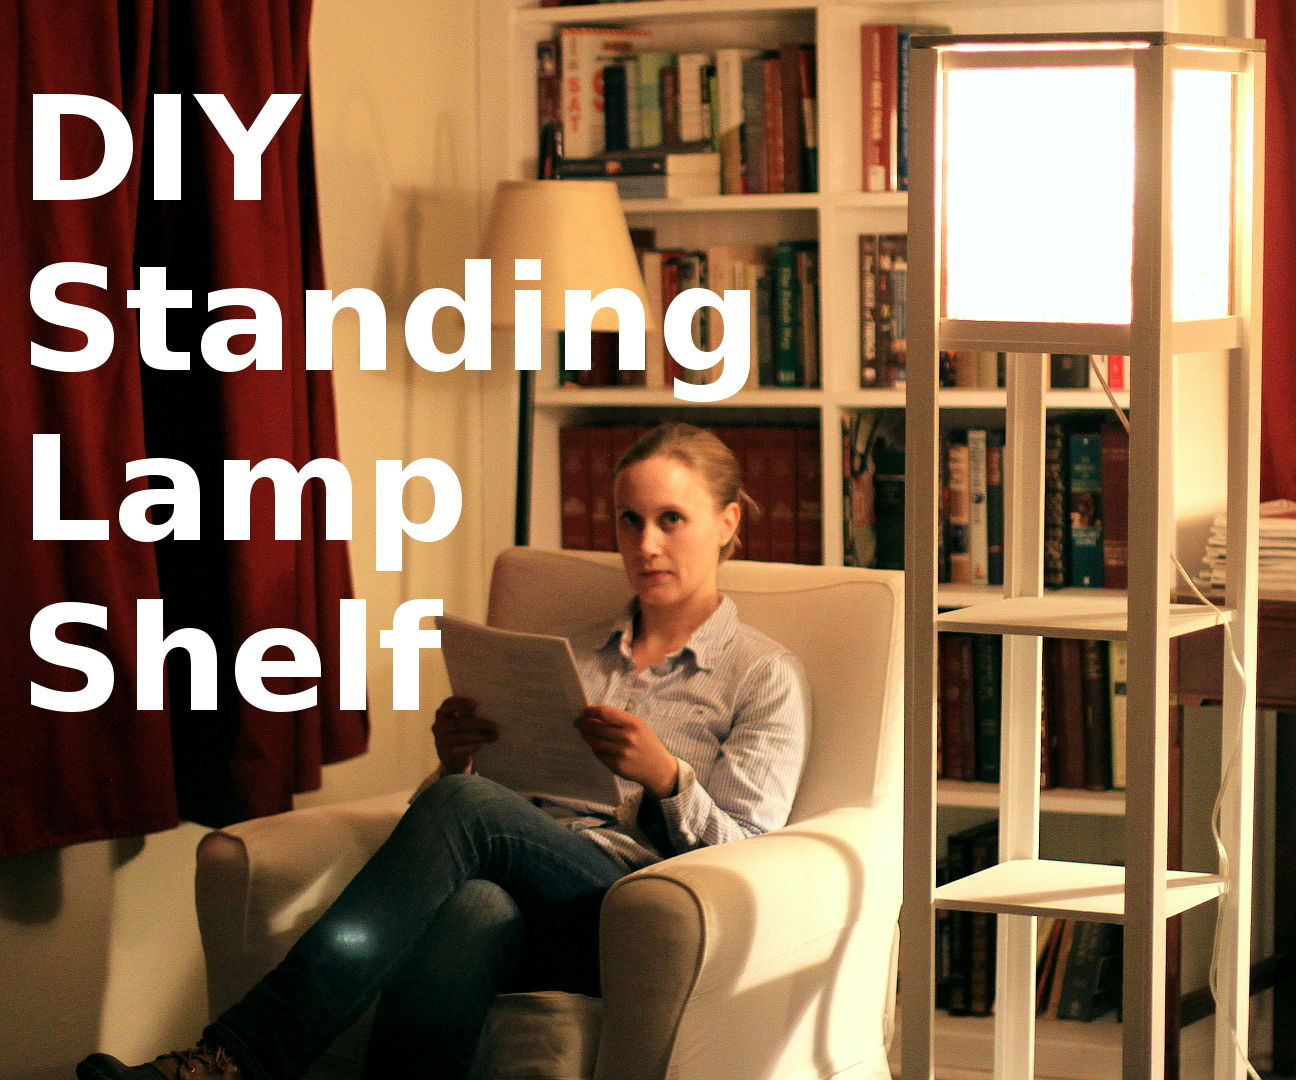 DIY Standing Lamp w/ Shelves